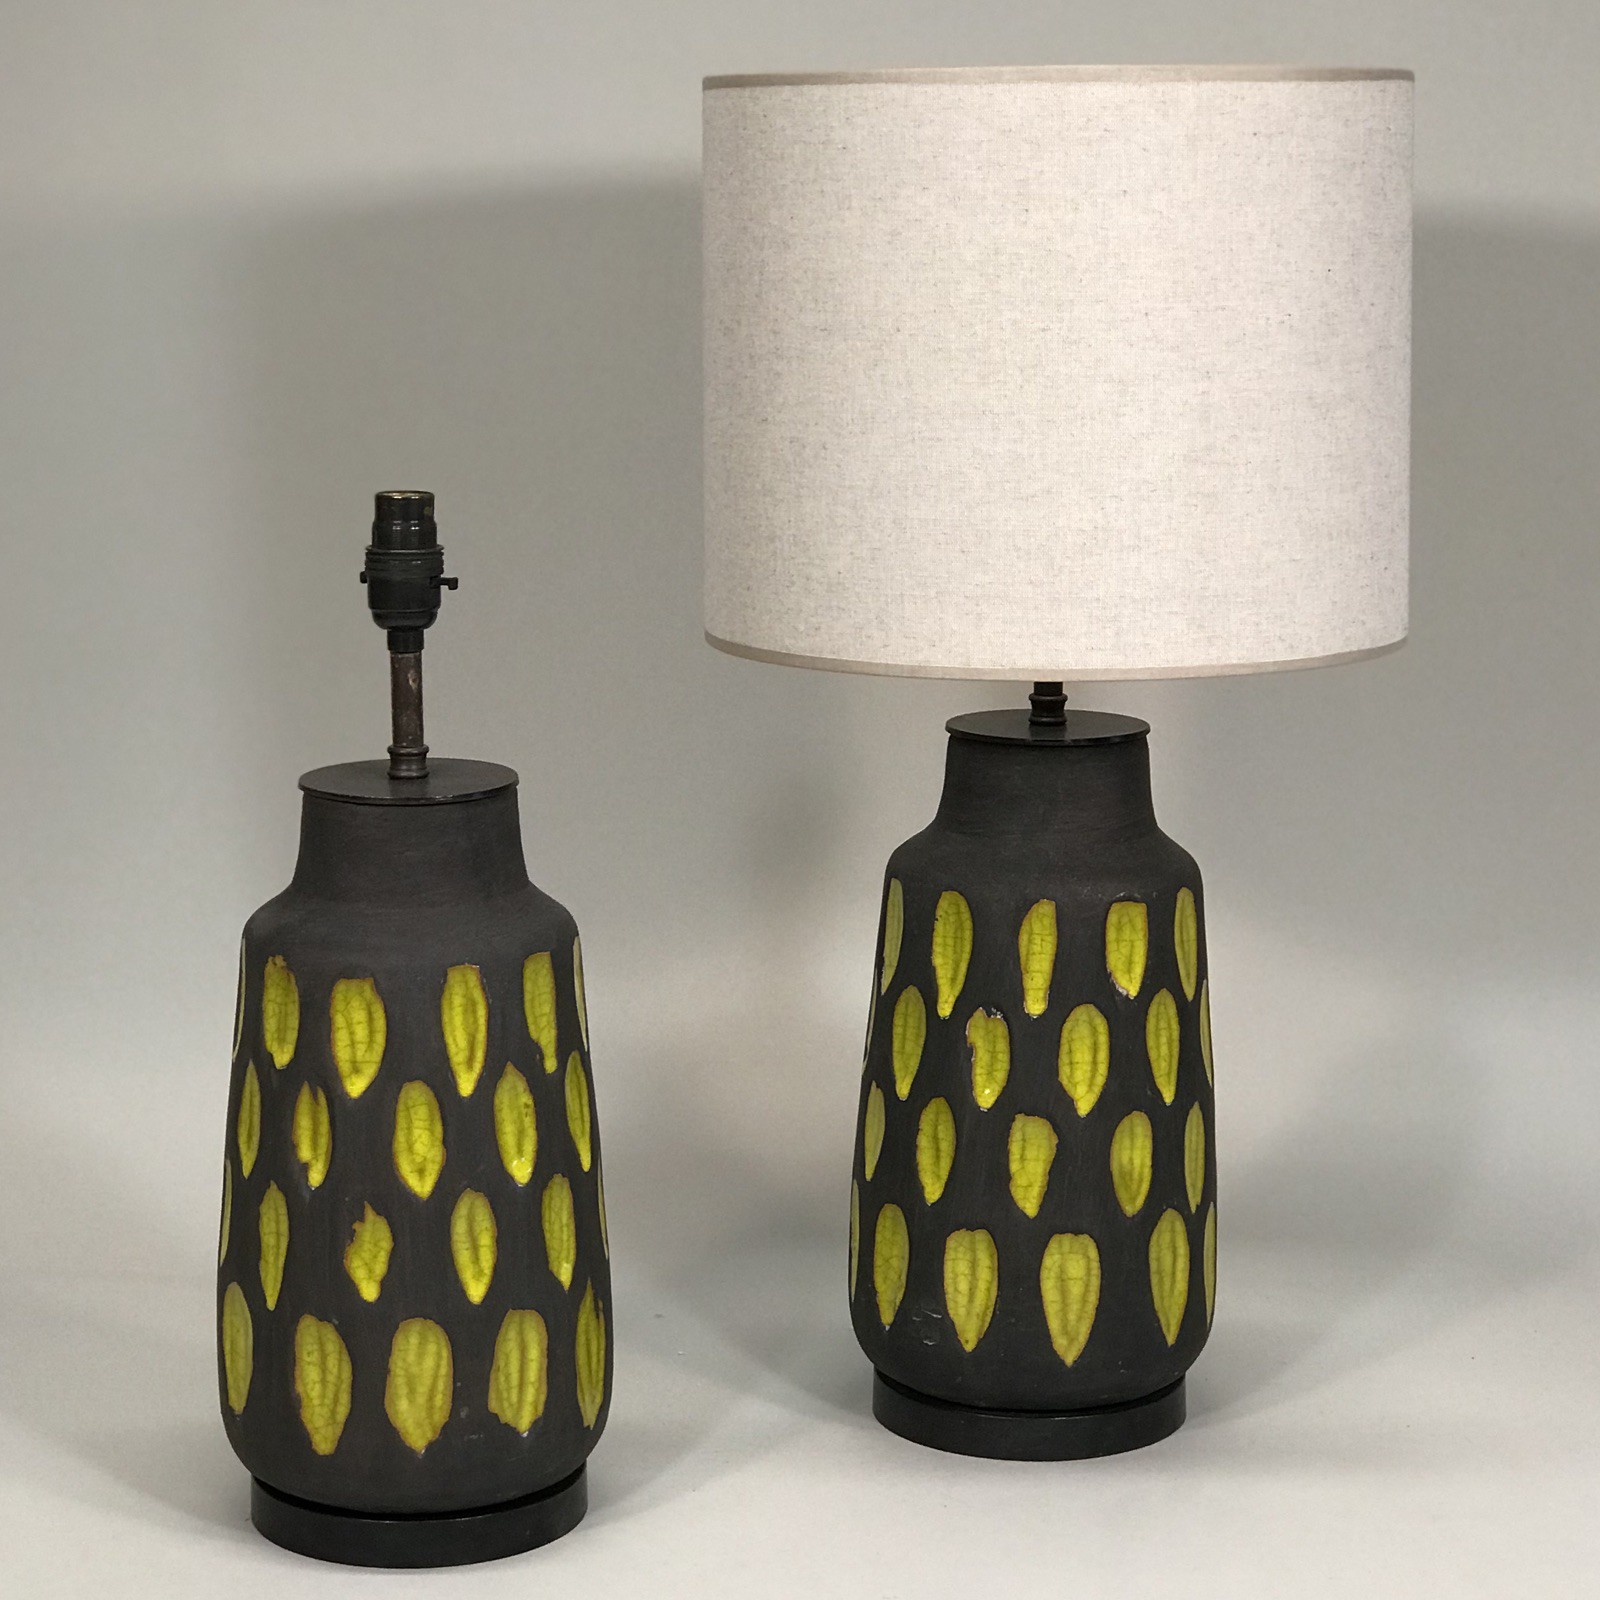 Pair Of Medium Mid Century Style Acid Yellow And Brown Ceramic Lamps On Brown Bronze Bases T5091 Tyson London Decorative Lighting And Furniture